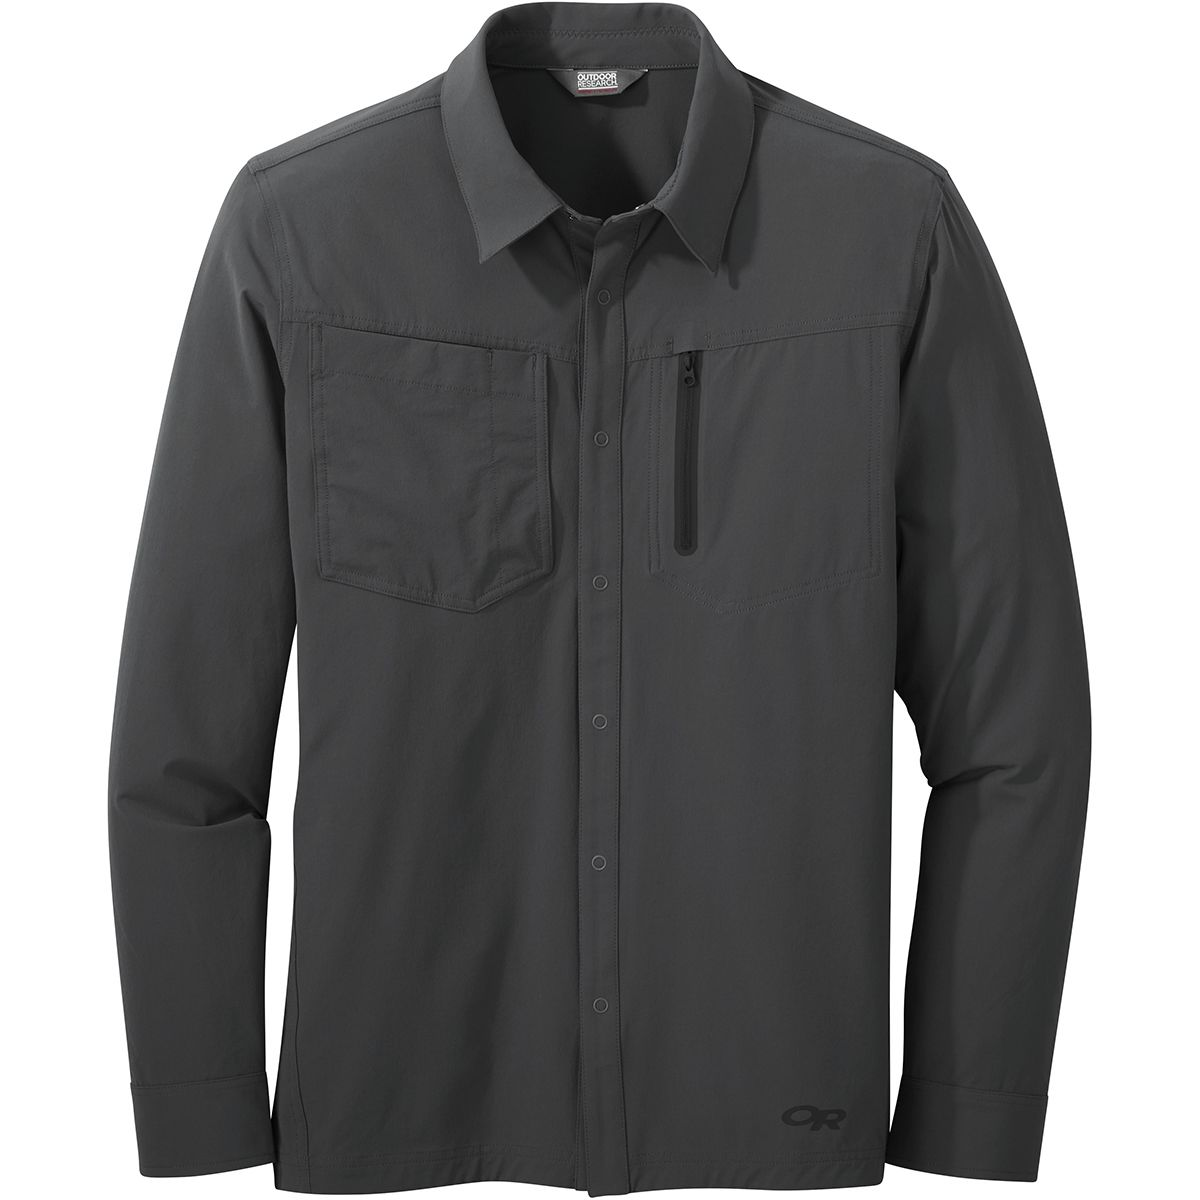 Outdoor Research Ferrosi Shirt Jacket